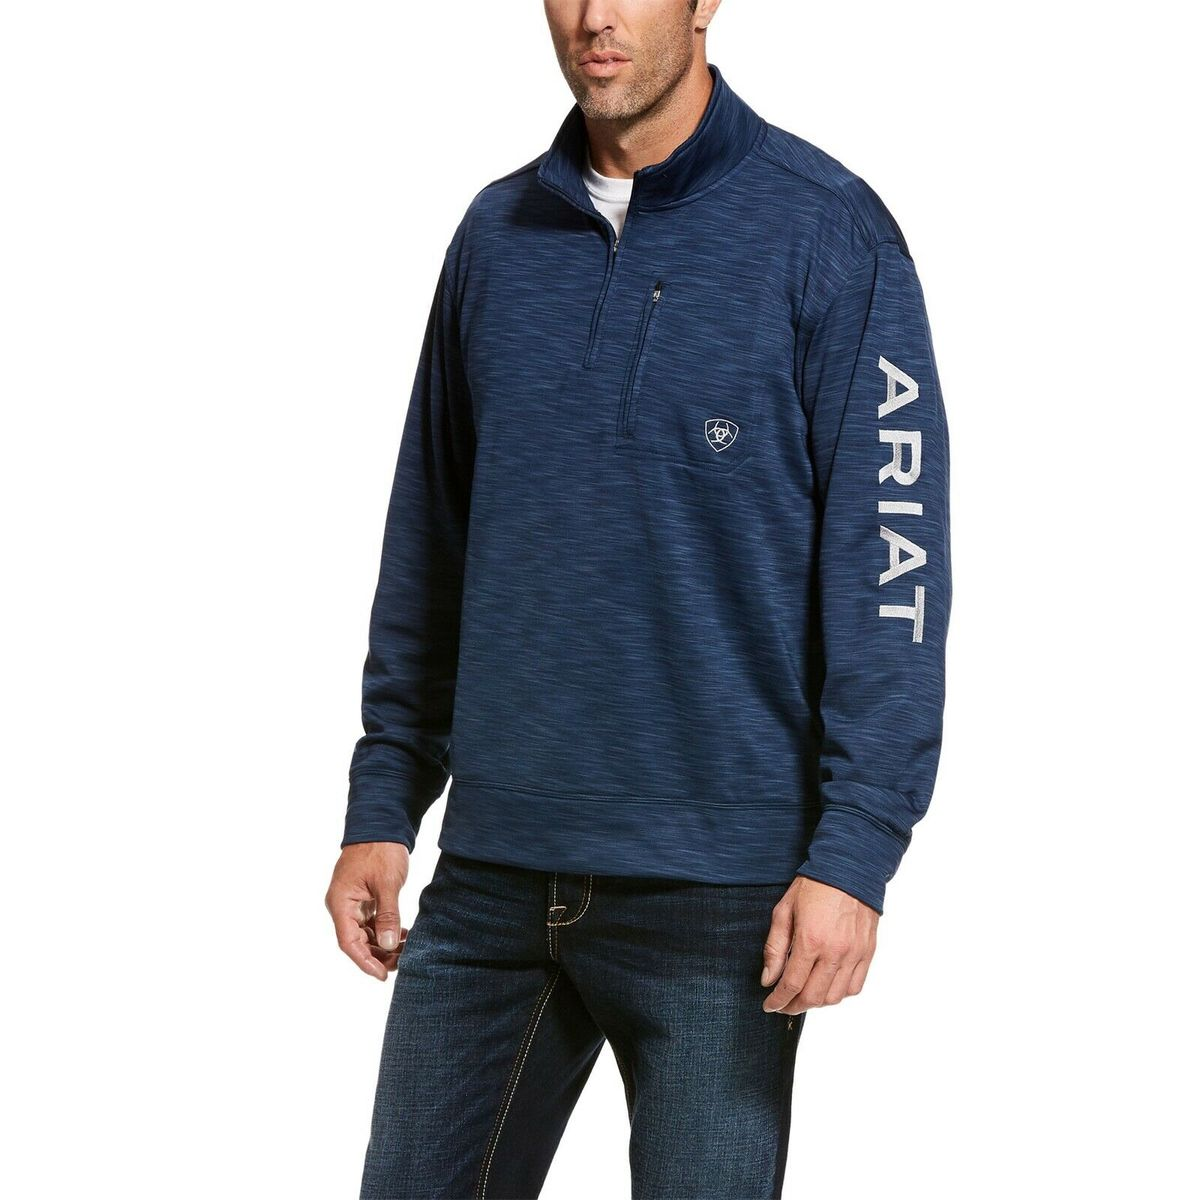 Men's Ariat Indigo Heather Team Logo 1/4 Zip, 10027989